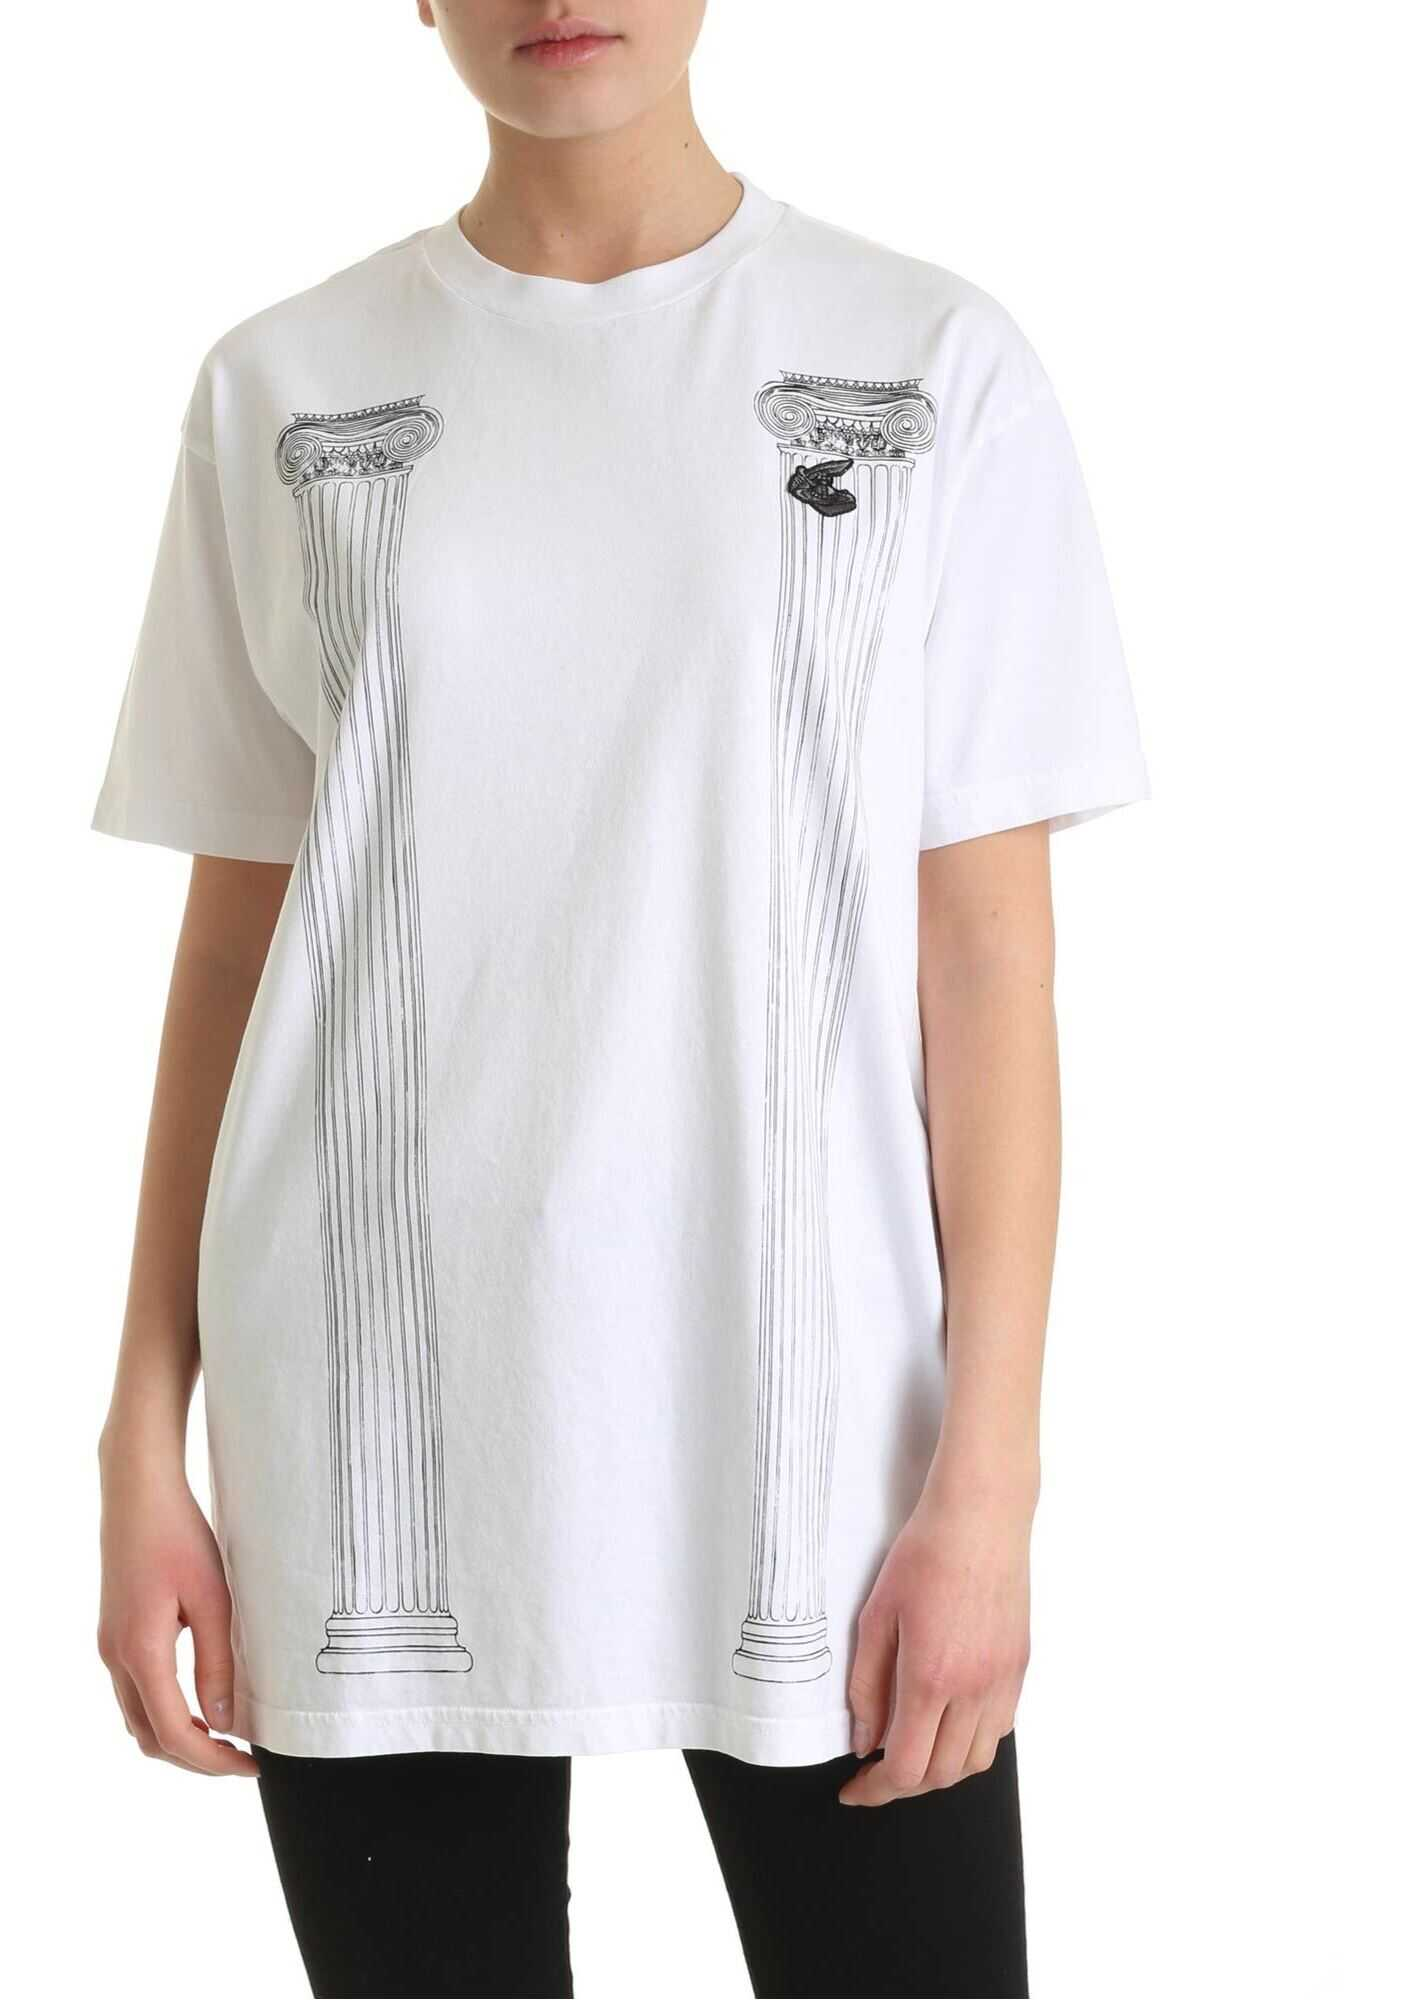 Vivienne Westwood Anglomania New Boxy Pillar T-Shirt In White White